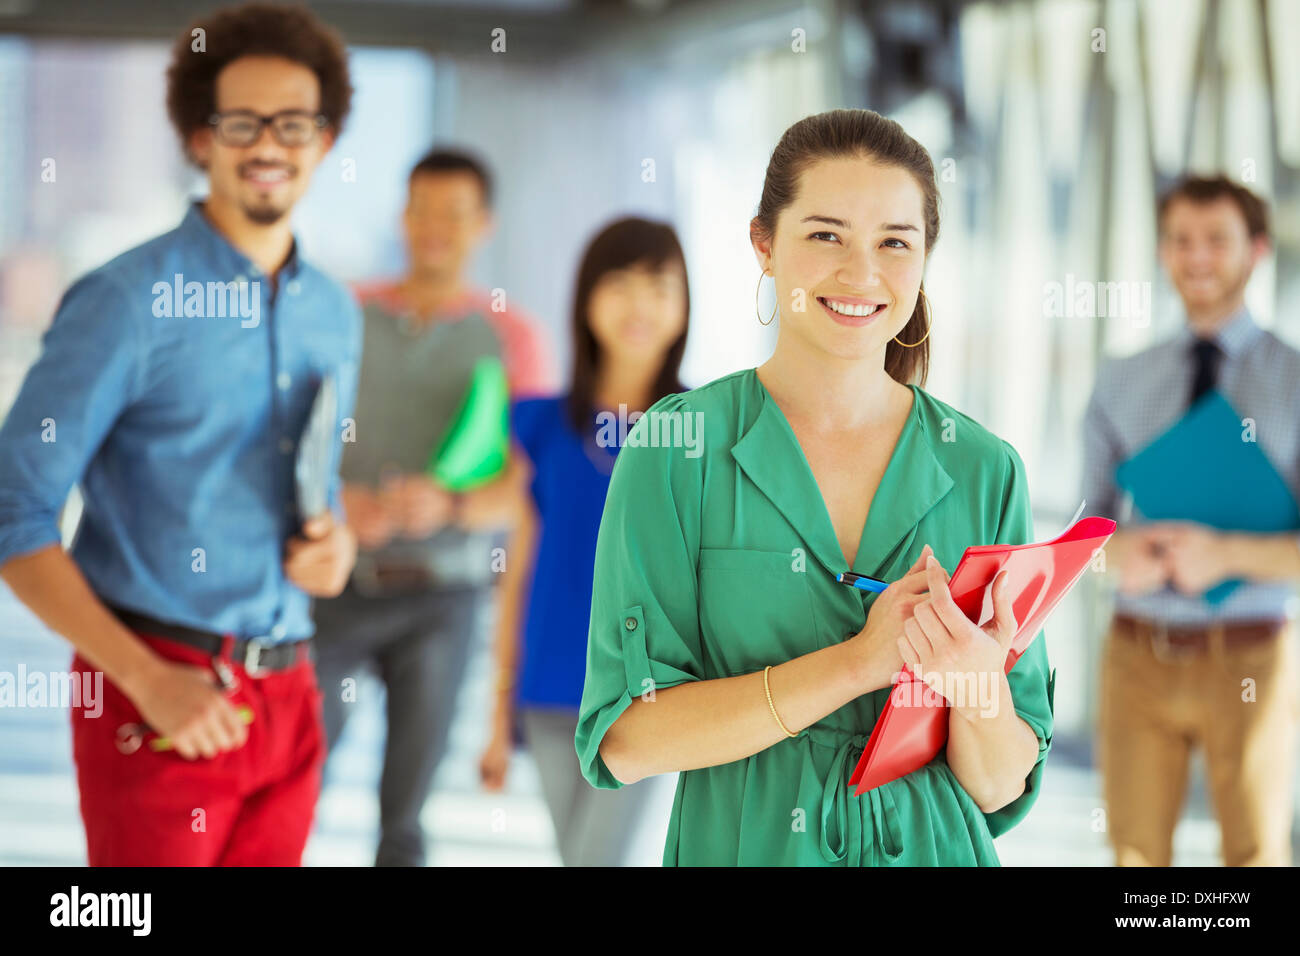 Portrait of creative businesswoman with folder and co-workers in corridor - Stock Image